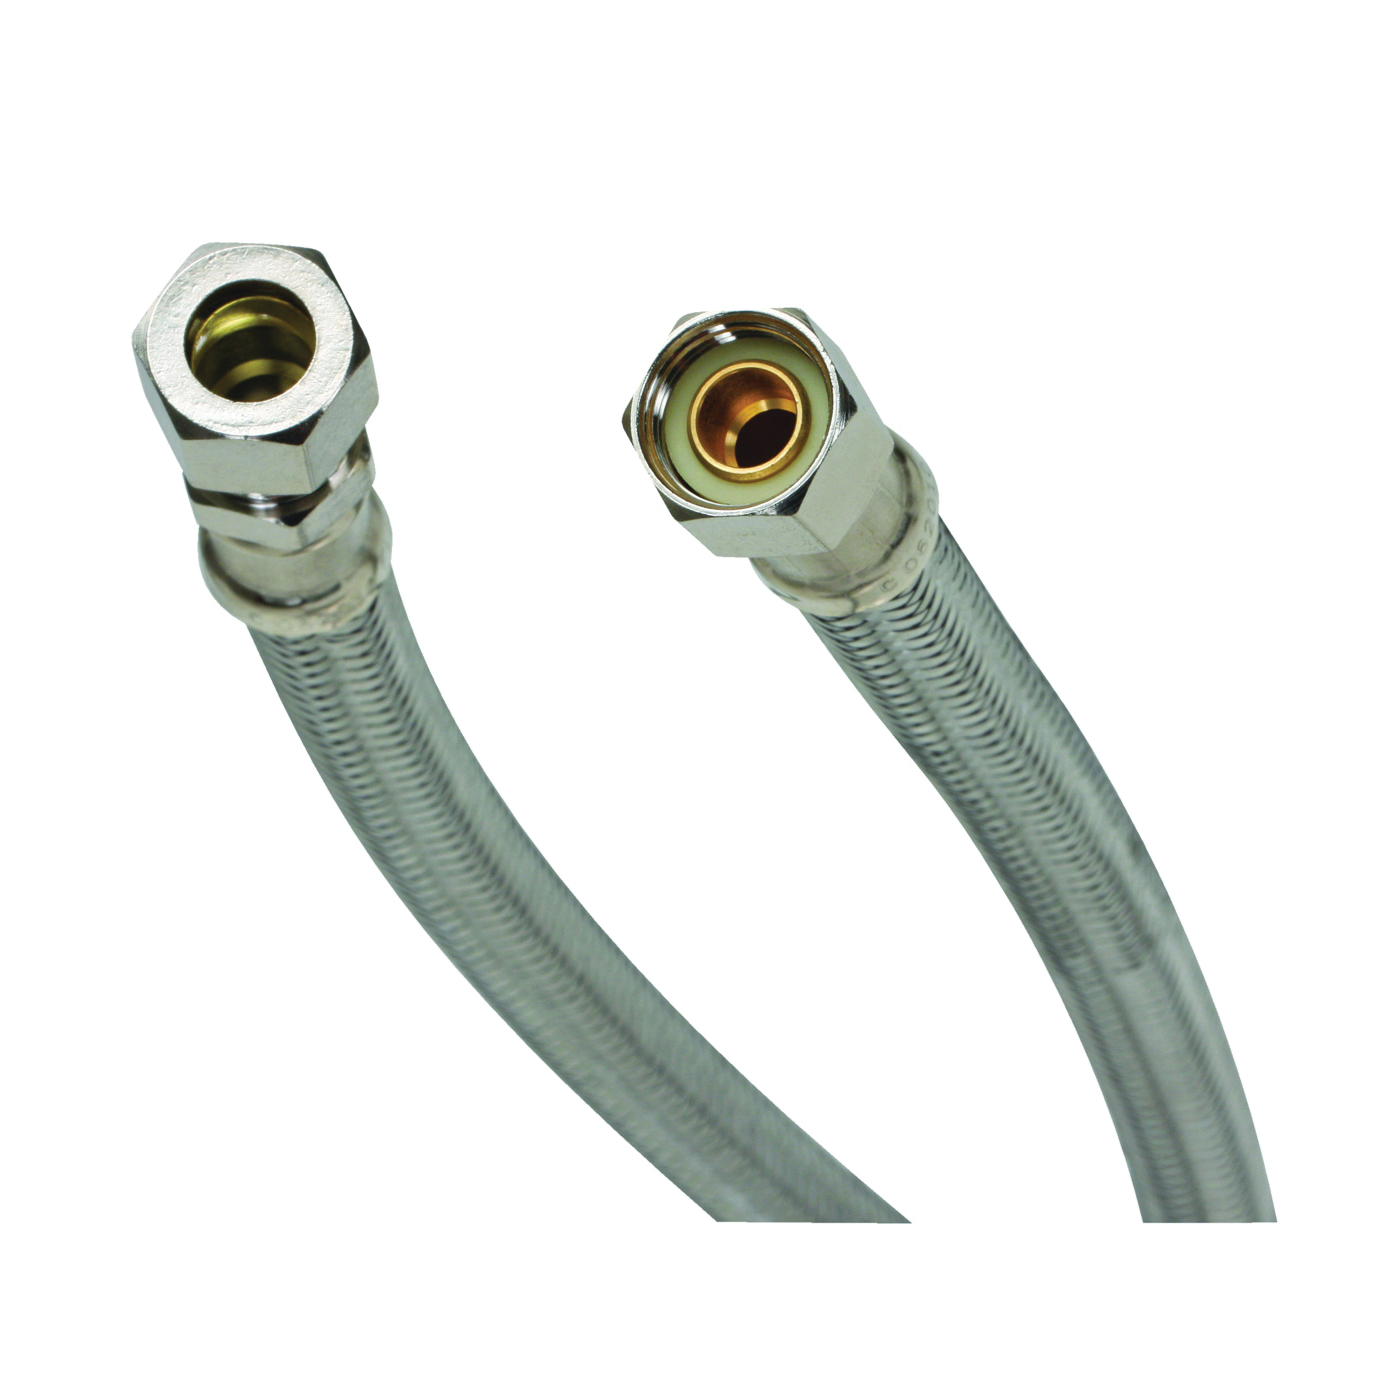 Picture of FLUIDMASTER B8F20 Water Supply Connector, 3/8 in, Compression, Polymer/Stainless Steel